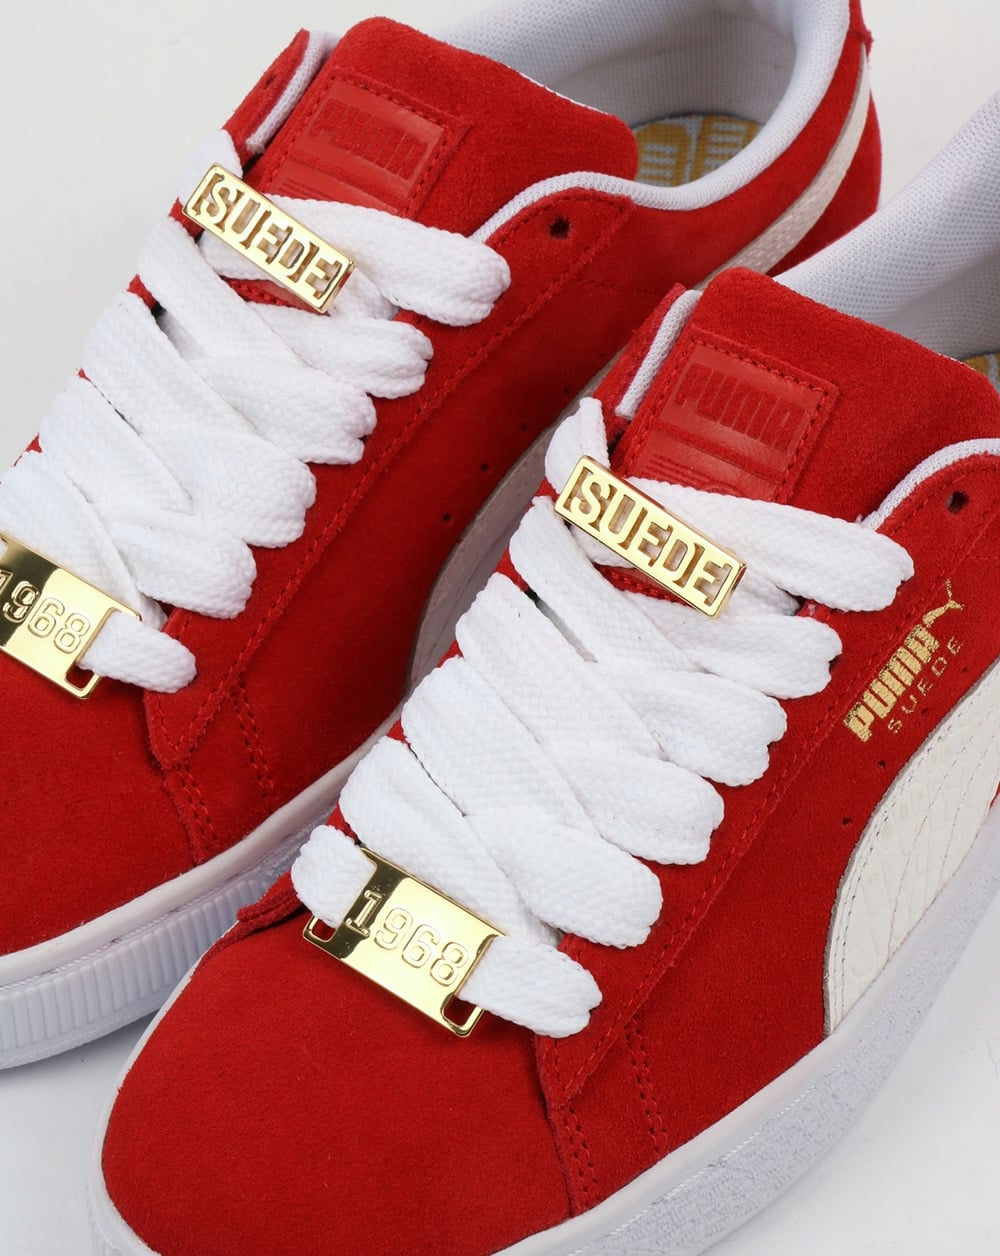 vvxOt2Q scarlet flame BBOY chaussures Puma Classic Suede Fabulous xZOp7101nw